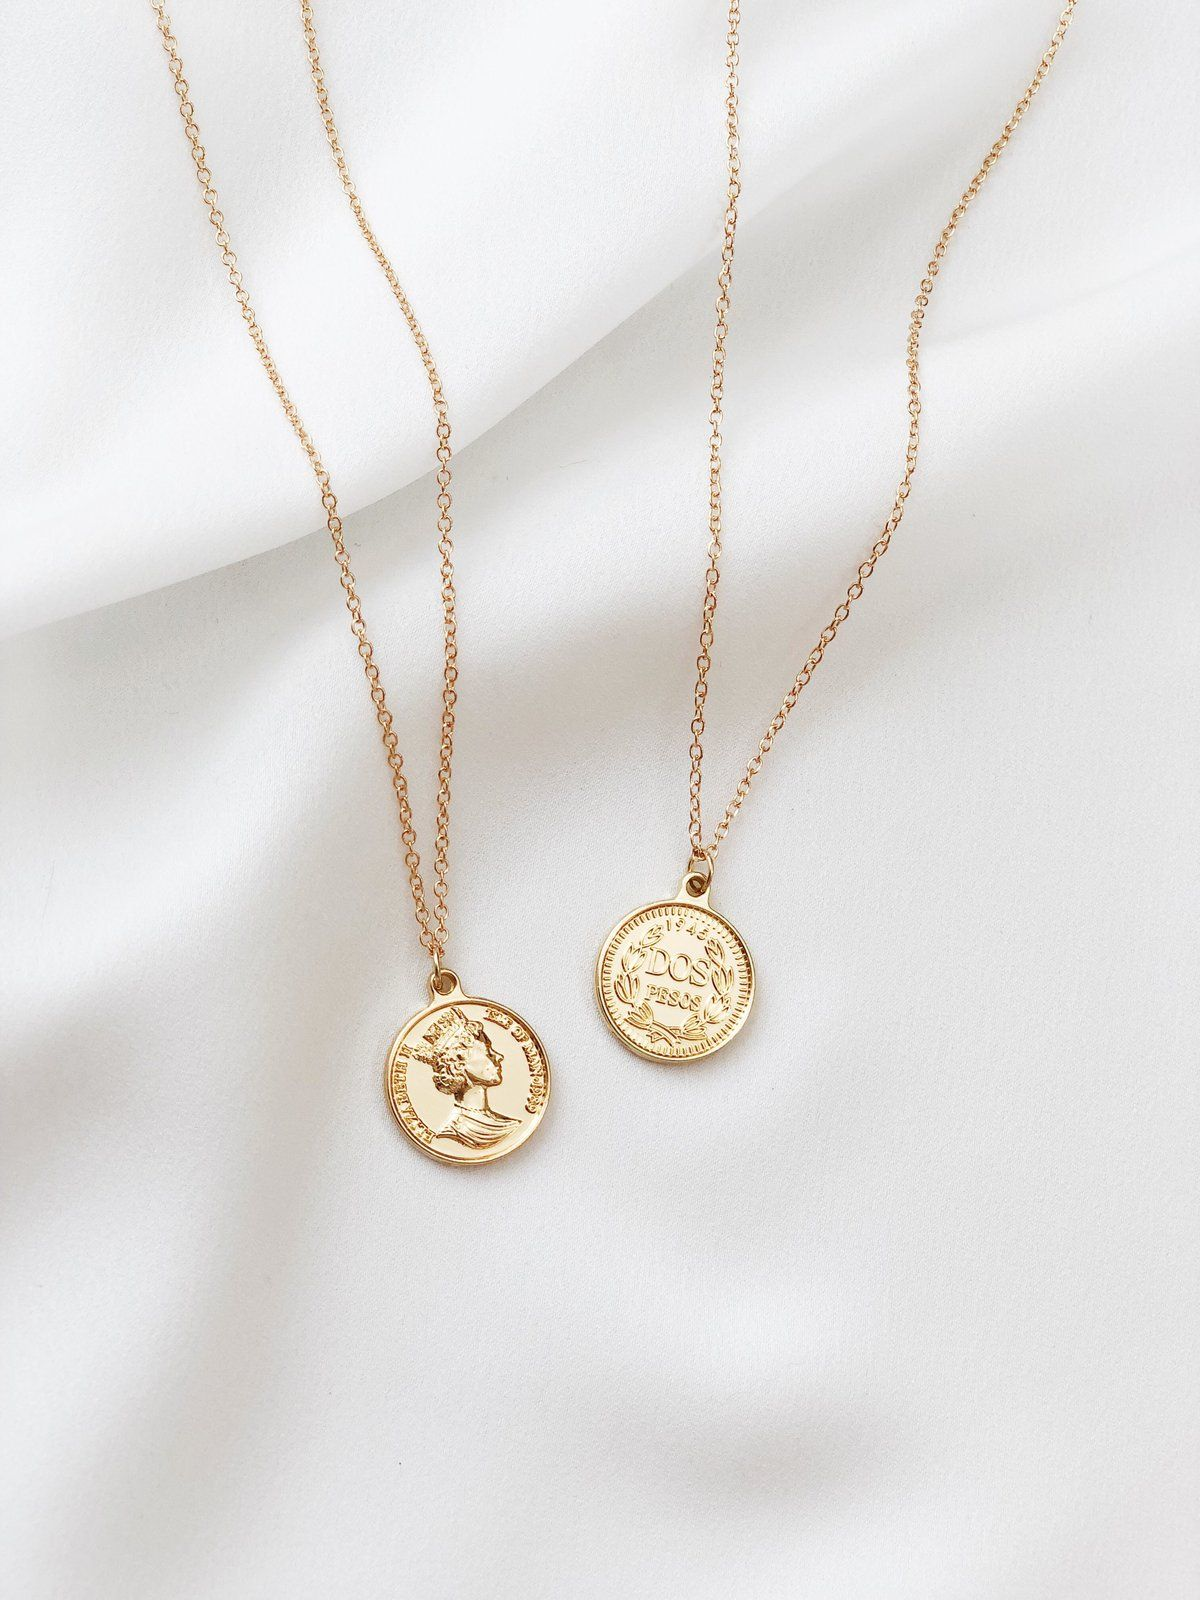 DETAILS SIZING & CARE A Two-faced pendant to suit your mood. An everyday necklace that you need! - Gold-plated alloy FIT- Very AdjustableCARE - Keep jewelry dry at all times, always avoid contact with chemicals.